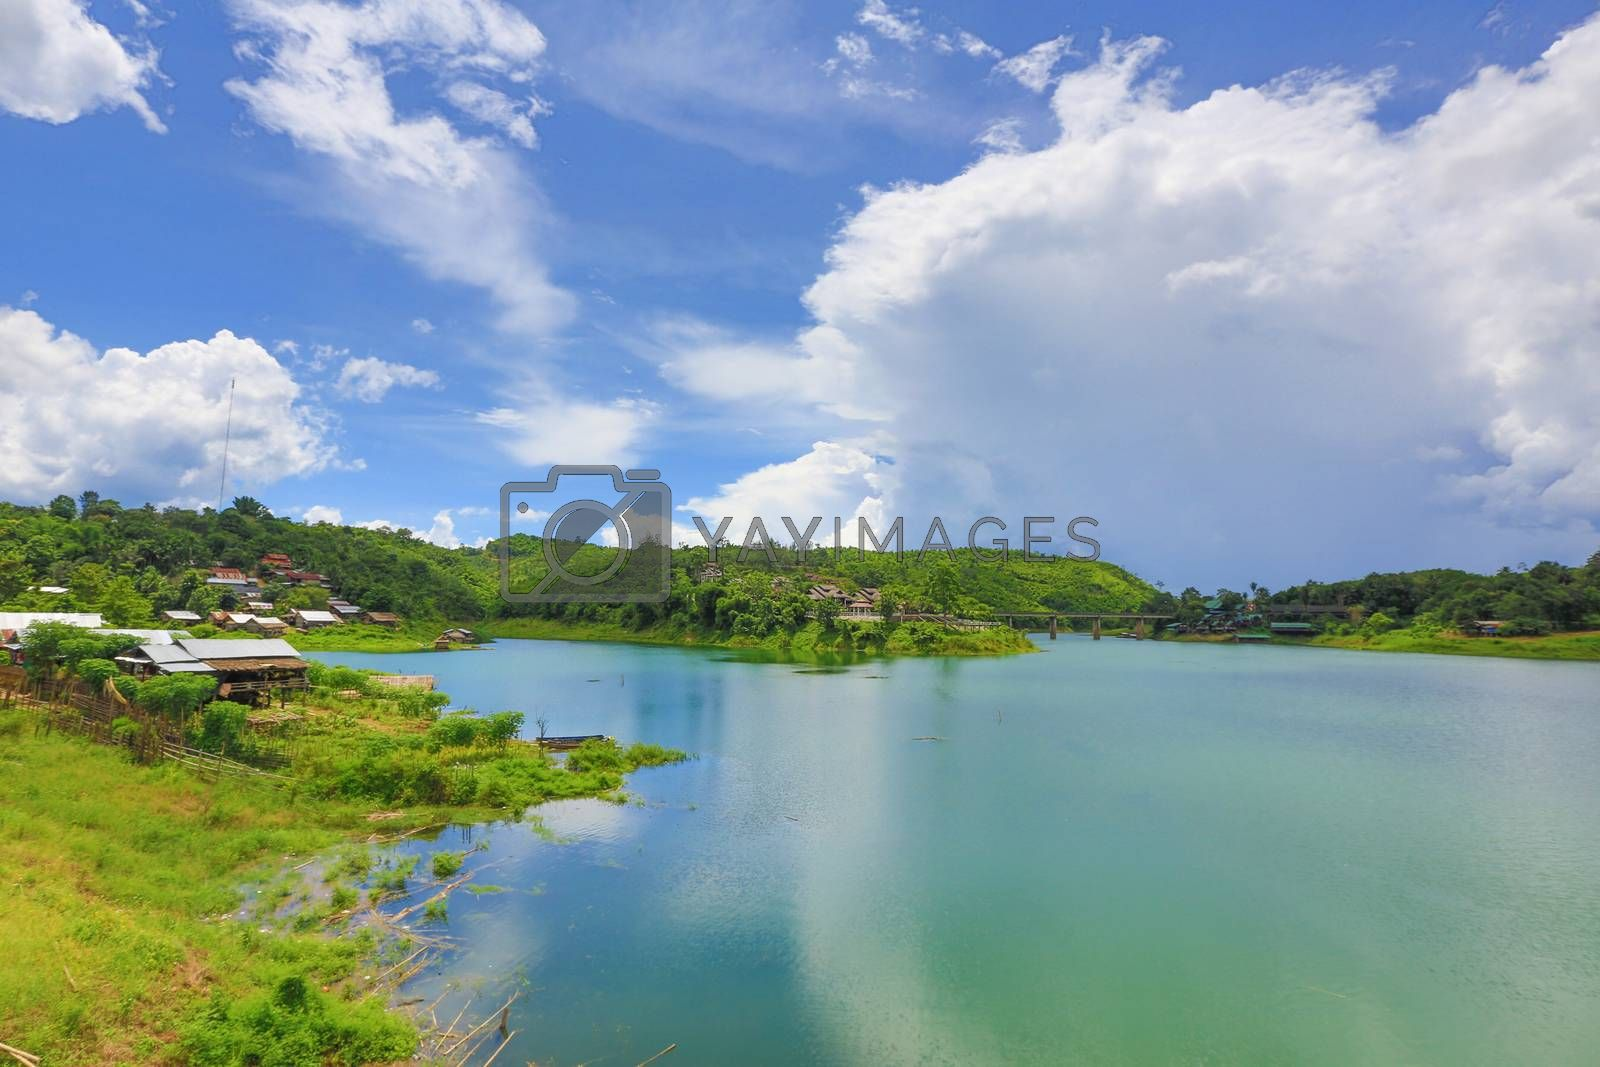 Royalty free image of the river by tuchkay